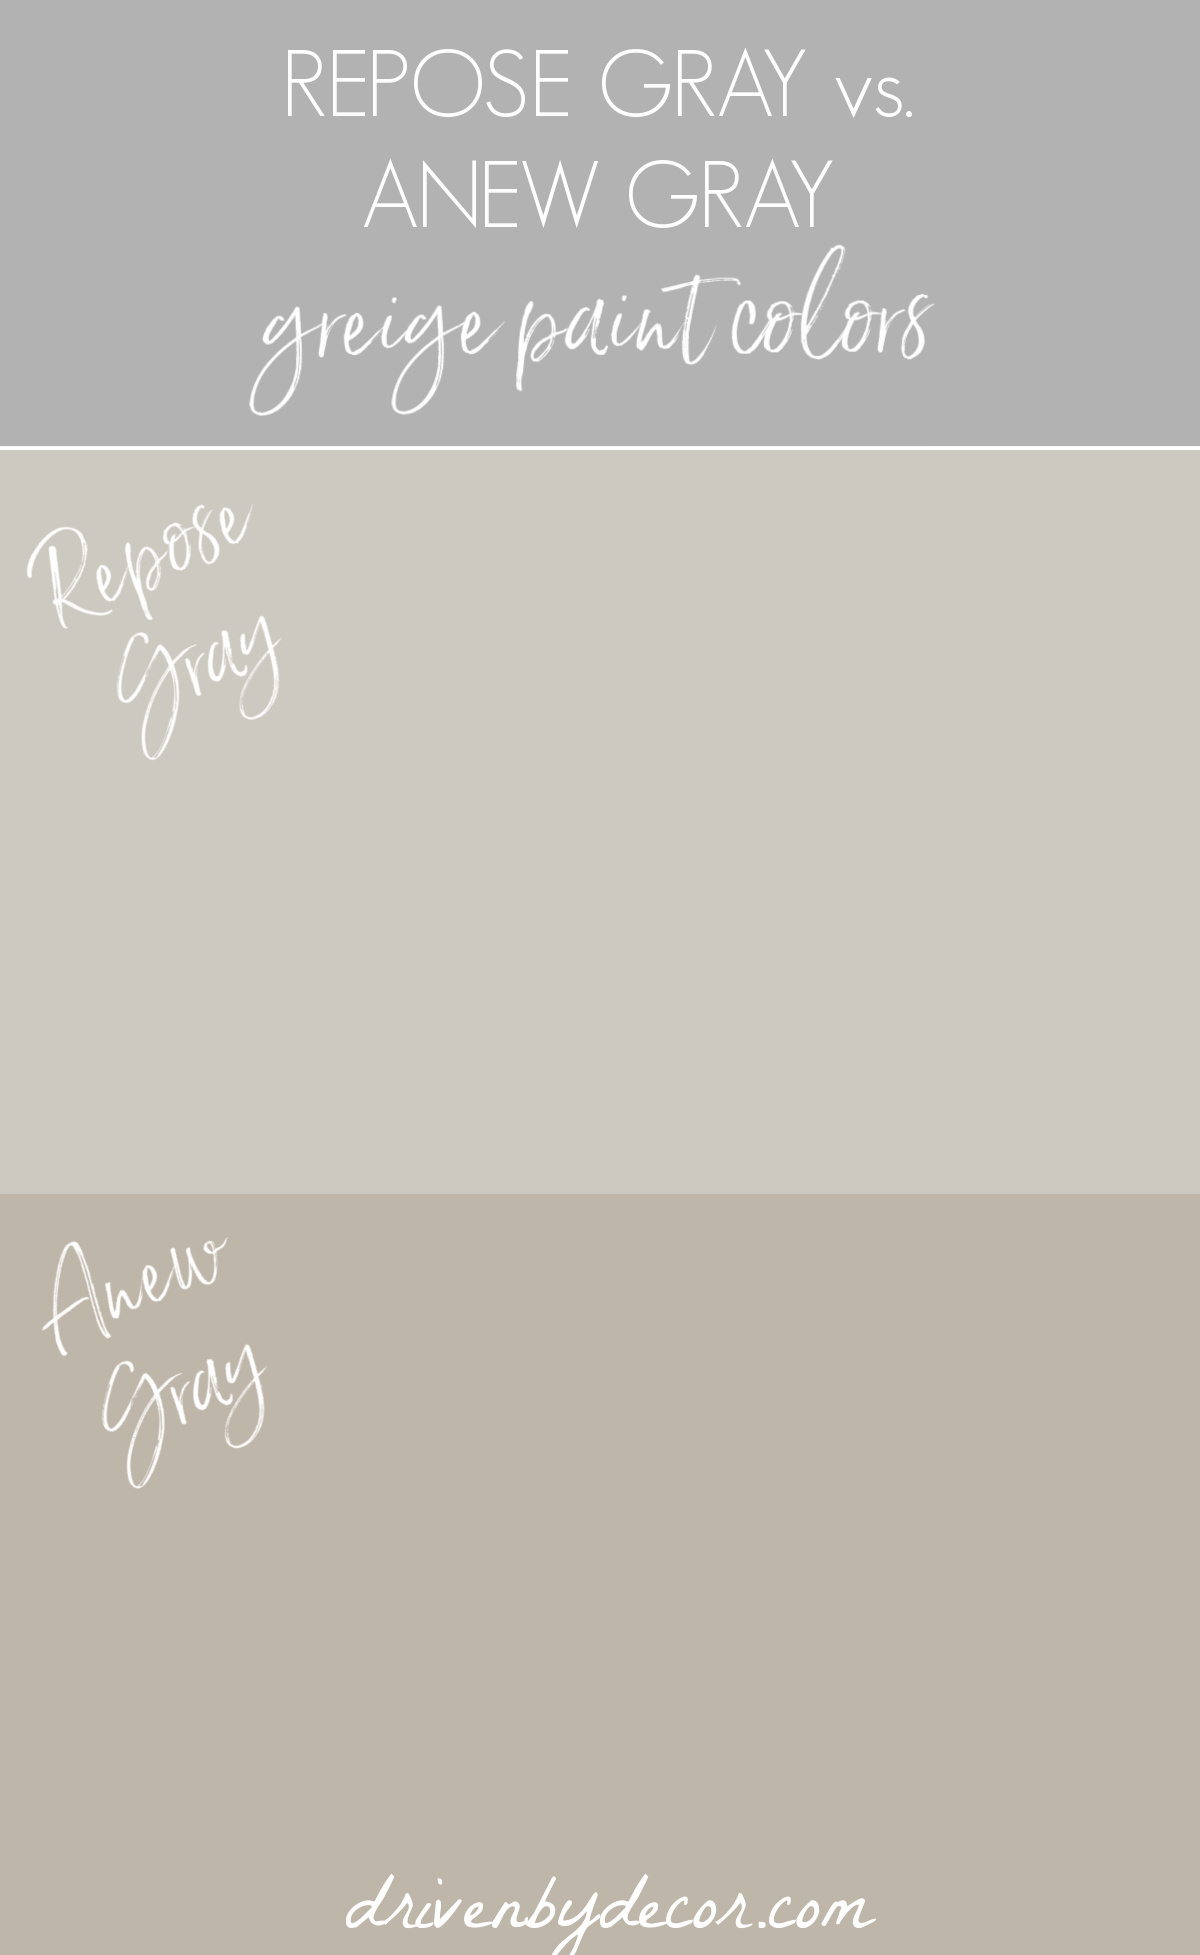 Repose Gray vs. Anew Gray greige paint colors